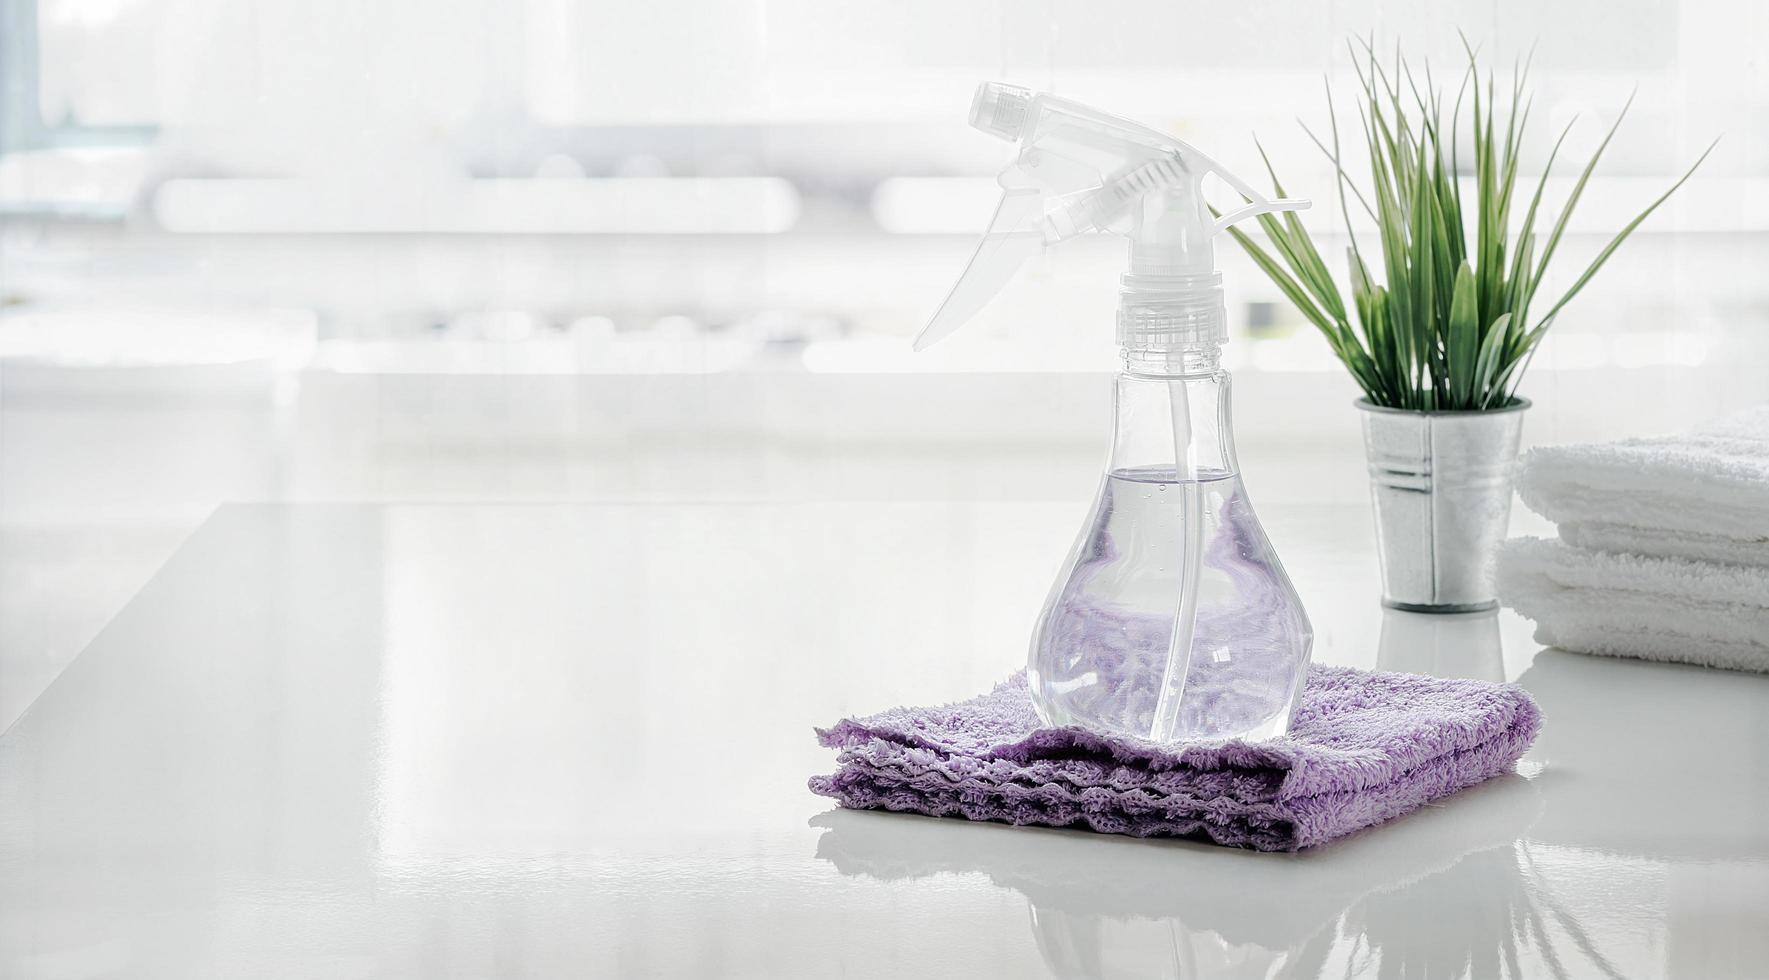 Spray bottle and towel on white table in kitchen  photo